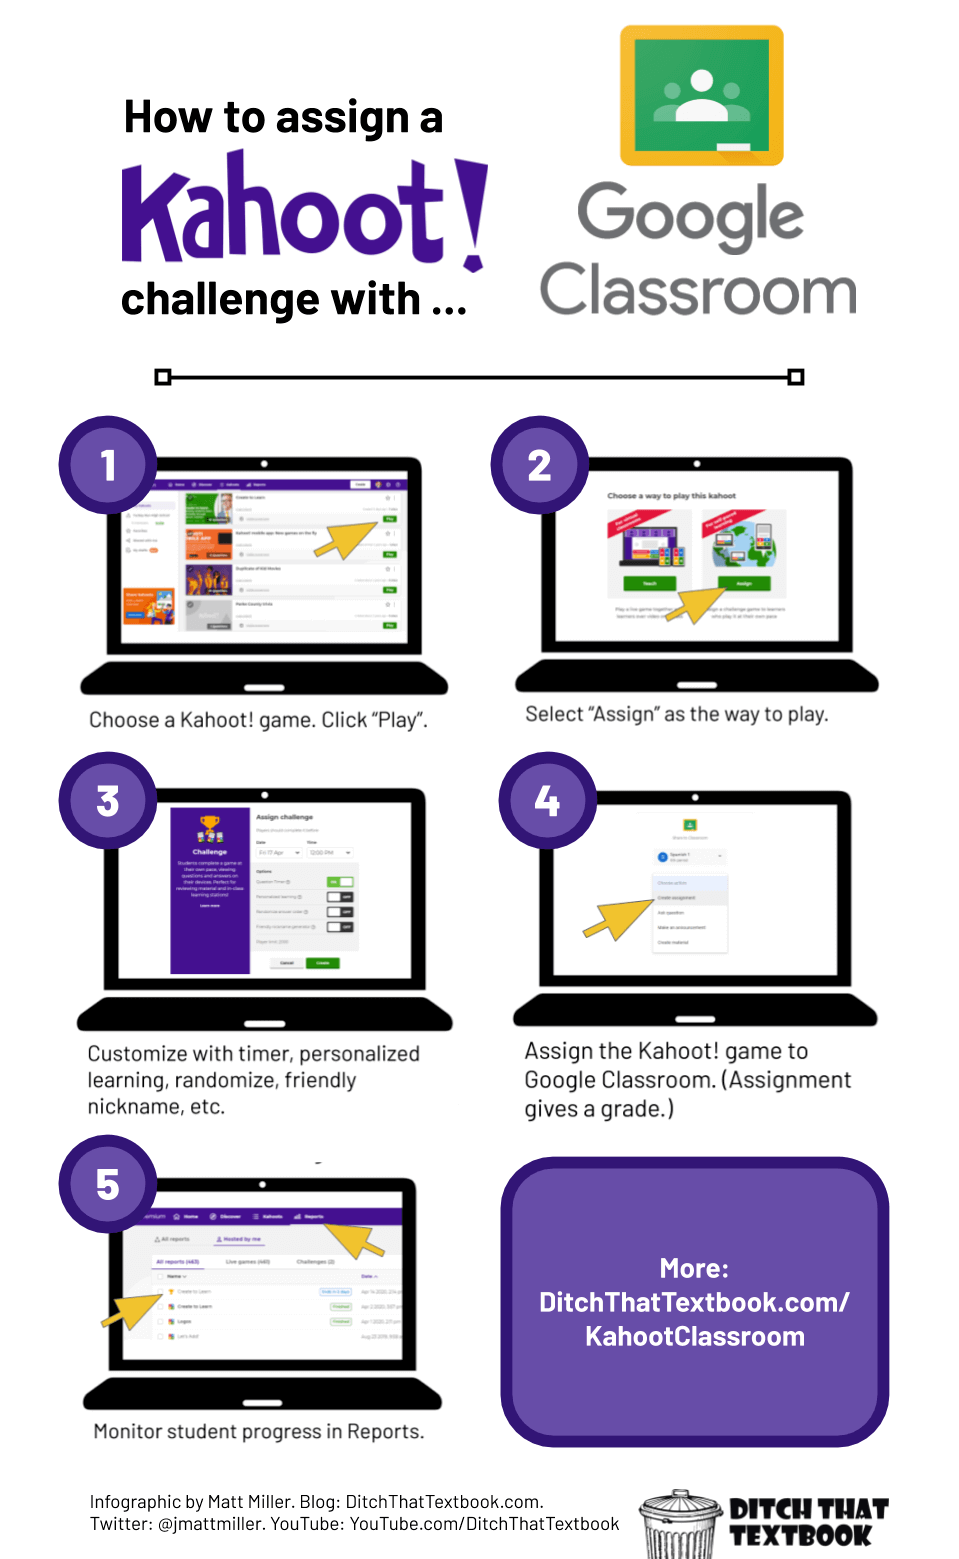 How to assign a Kahoot! Challenge with Google Classroom